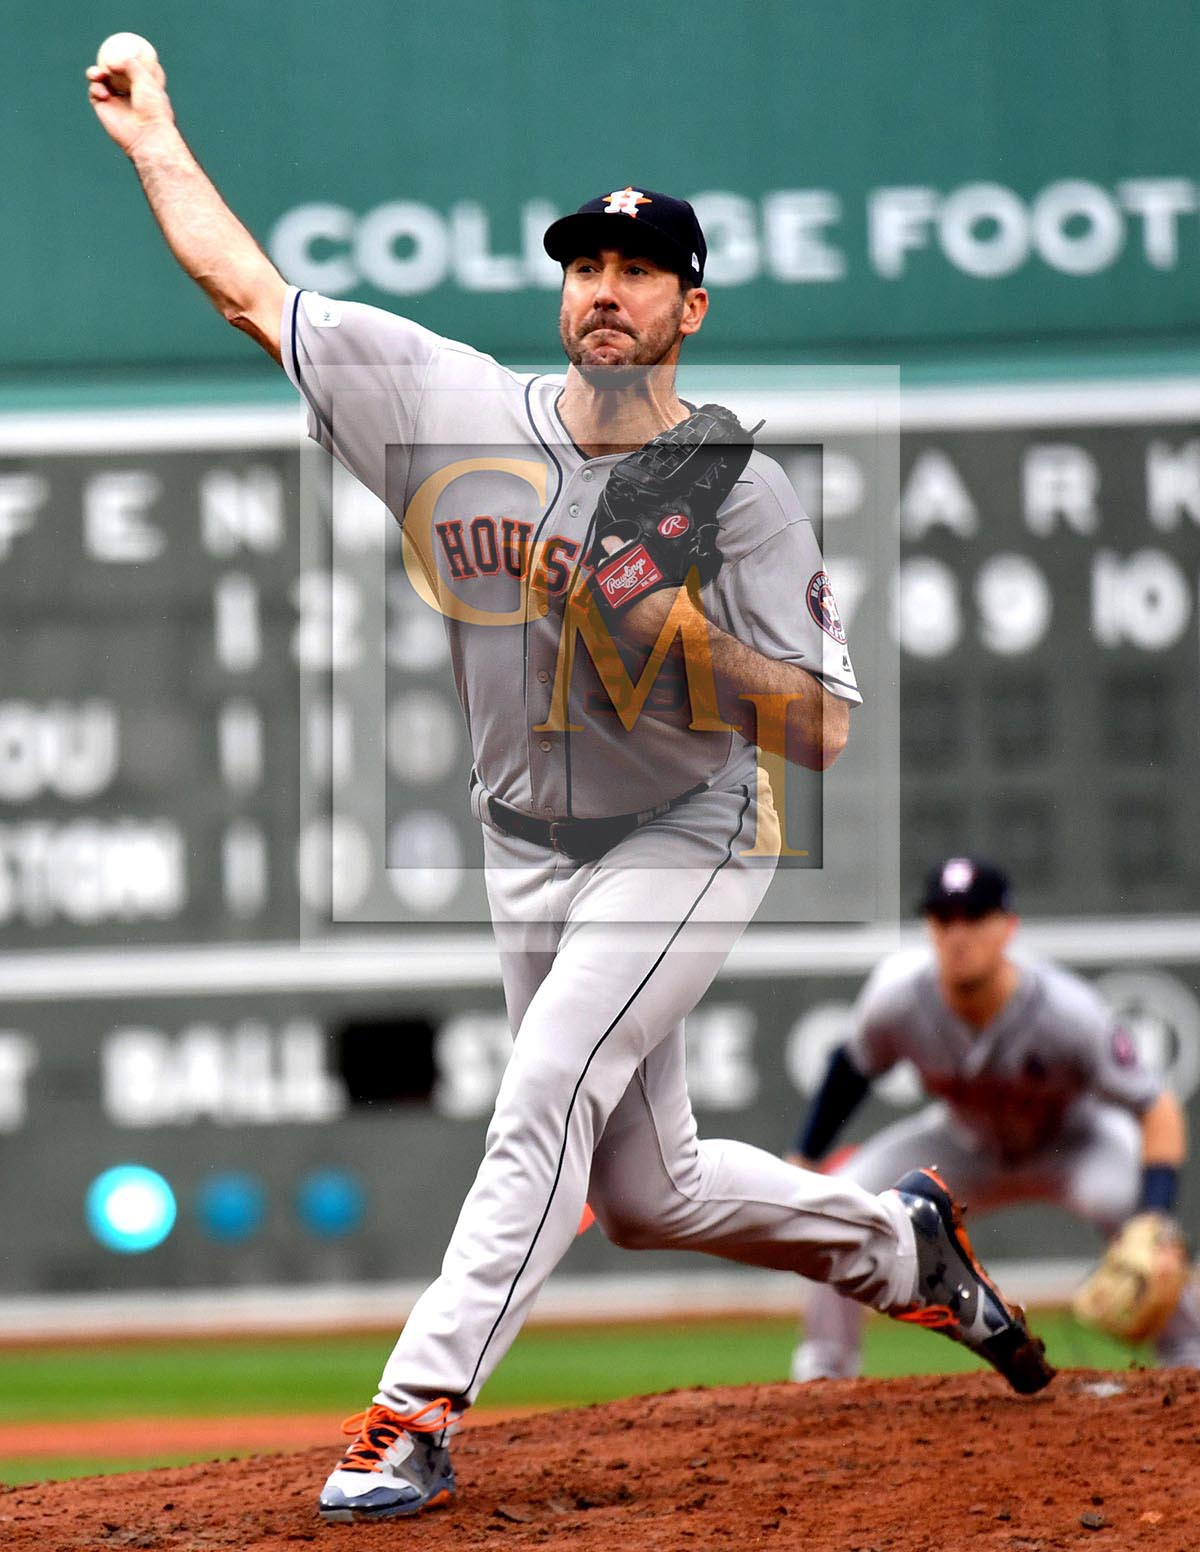 Astros JUSTIN VERLANDER wins his first professional relief appearance